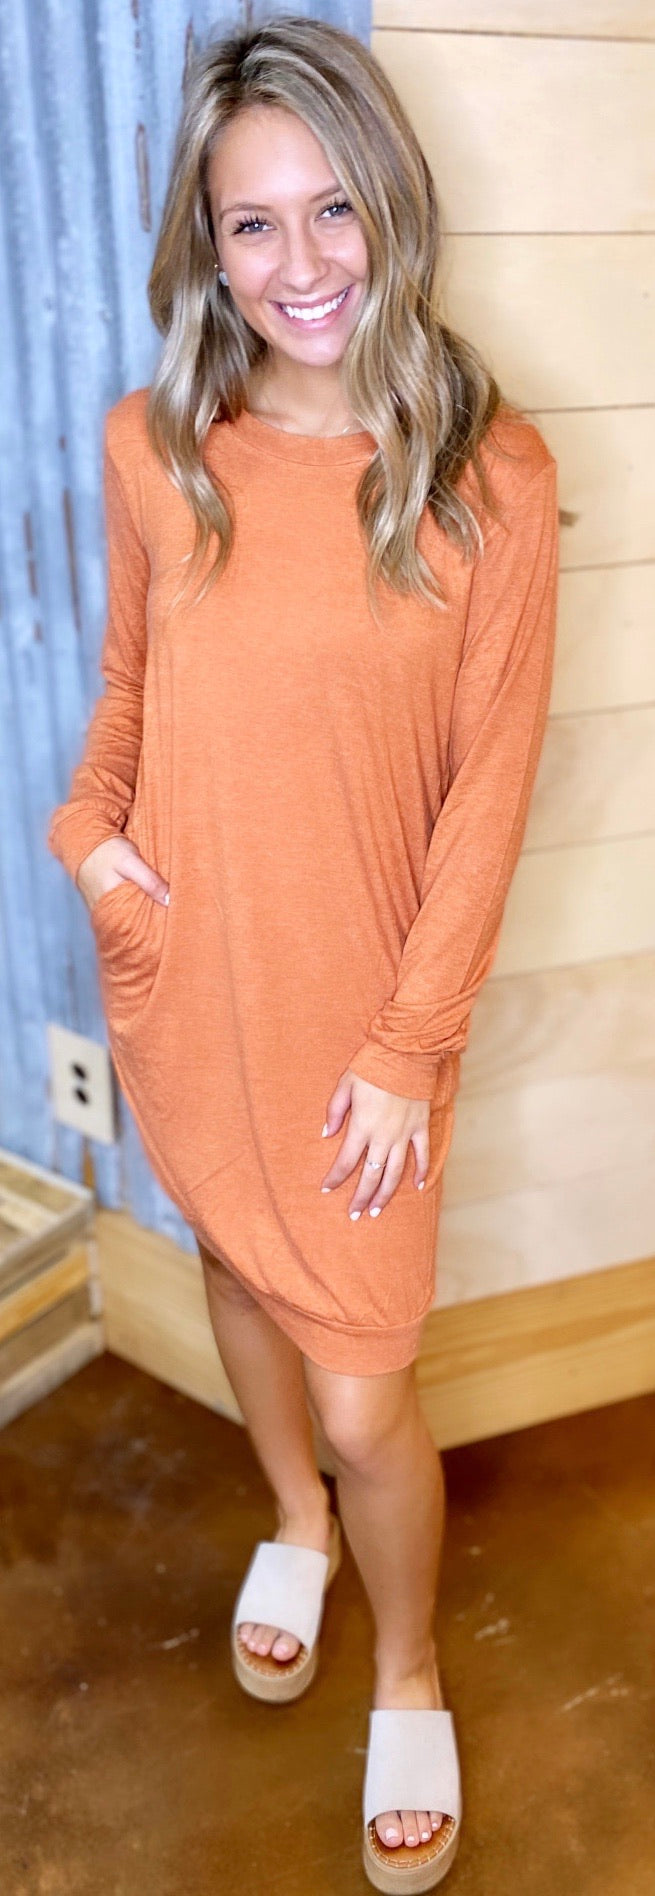 4850-Just Can't Wait Tunic Dress